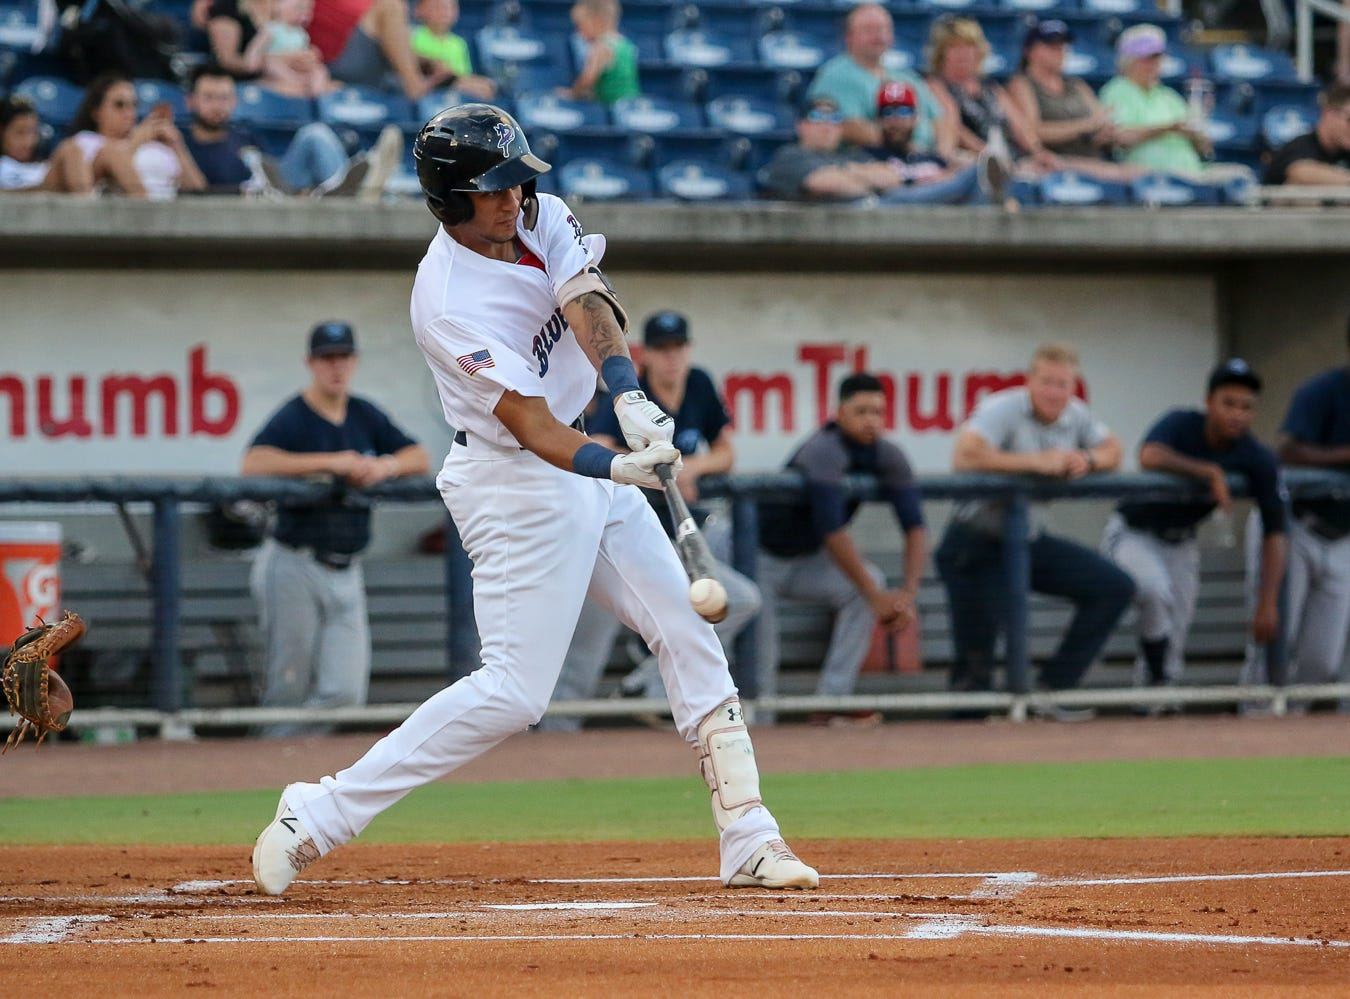 Pensacola's Jose Siri (22) just misses connecting on a pitch thrown by Mobile's Patrick Sandoval during the Blue Wahoos' last home game of the regular season on Tuesday, August 28, 2018.